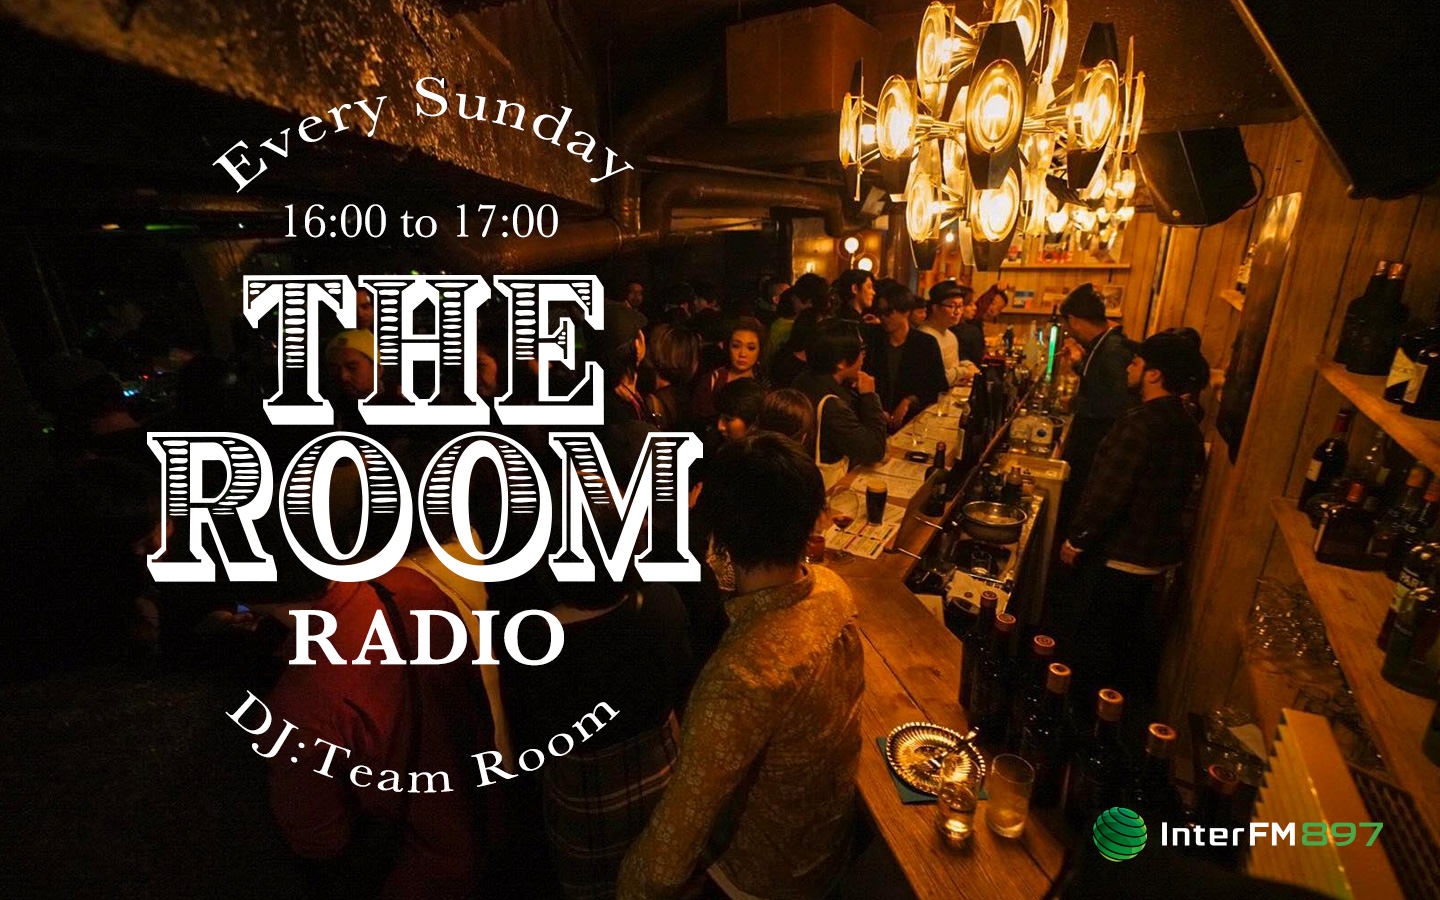 The Room Radio